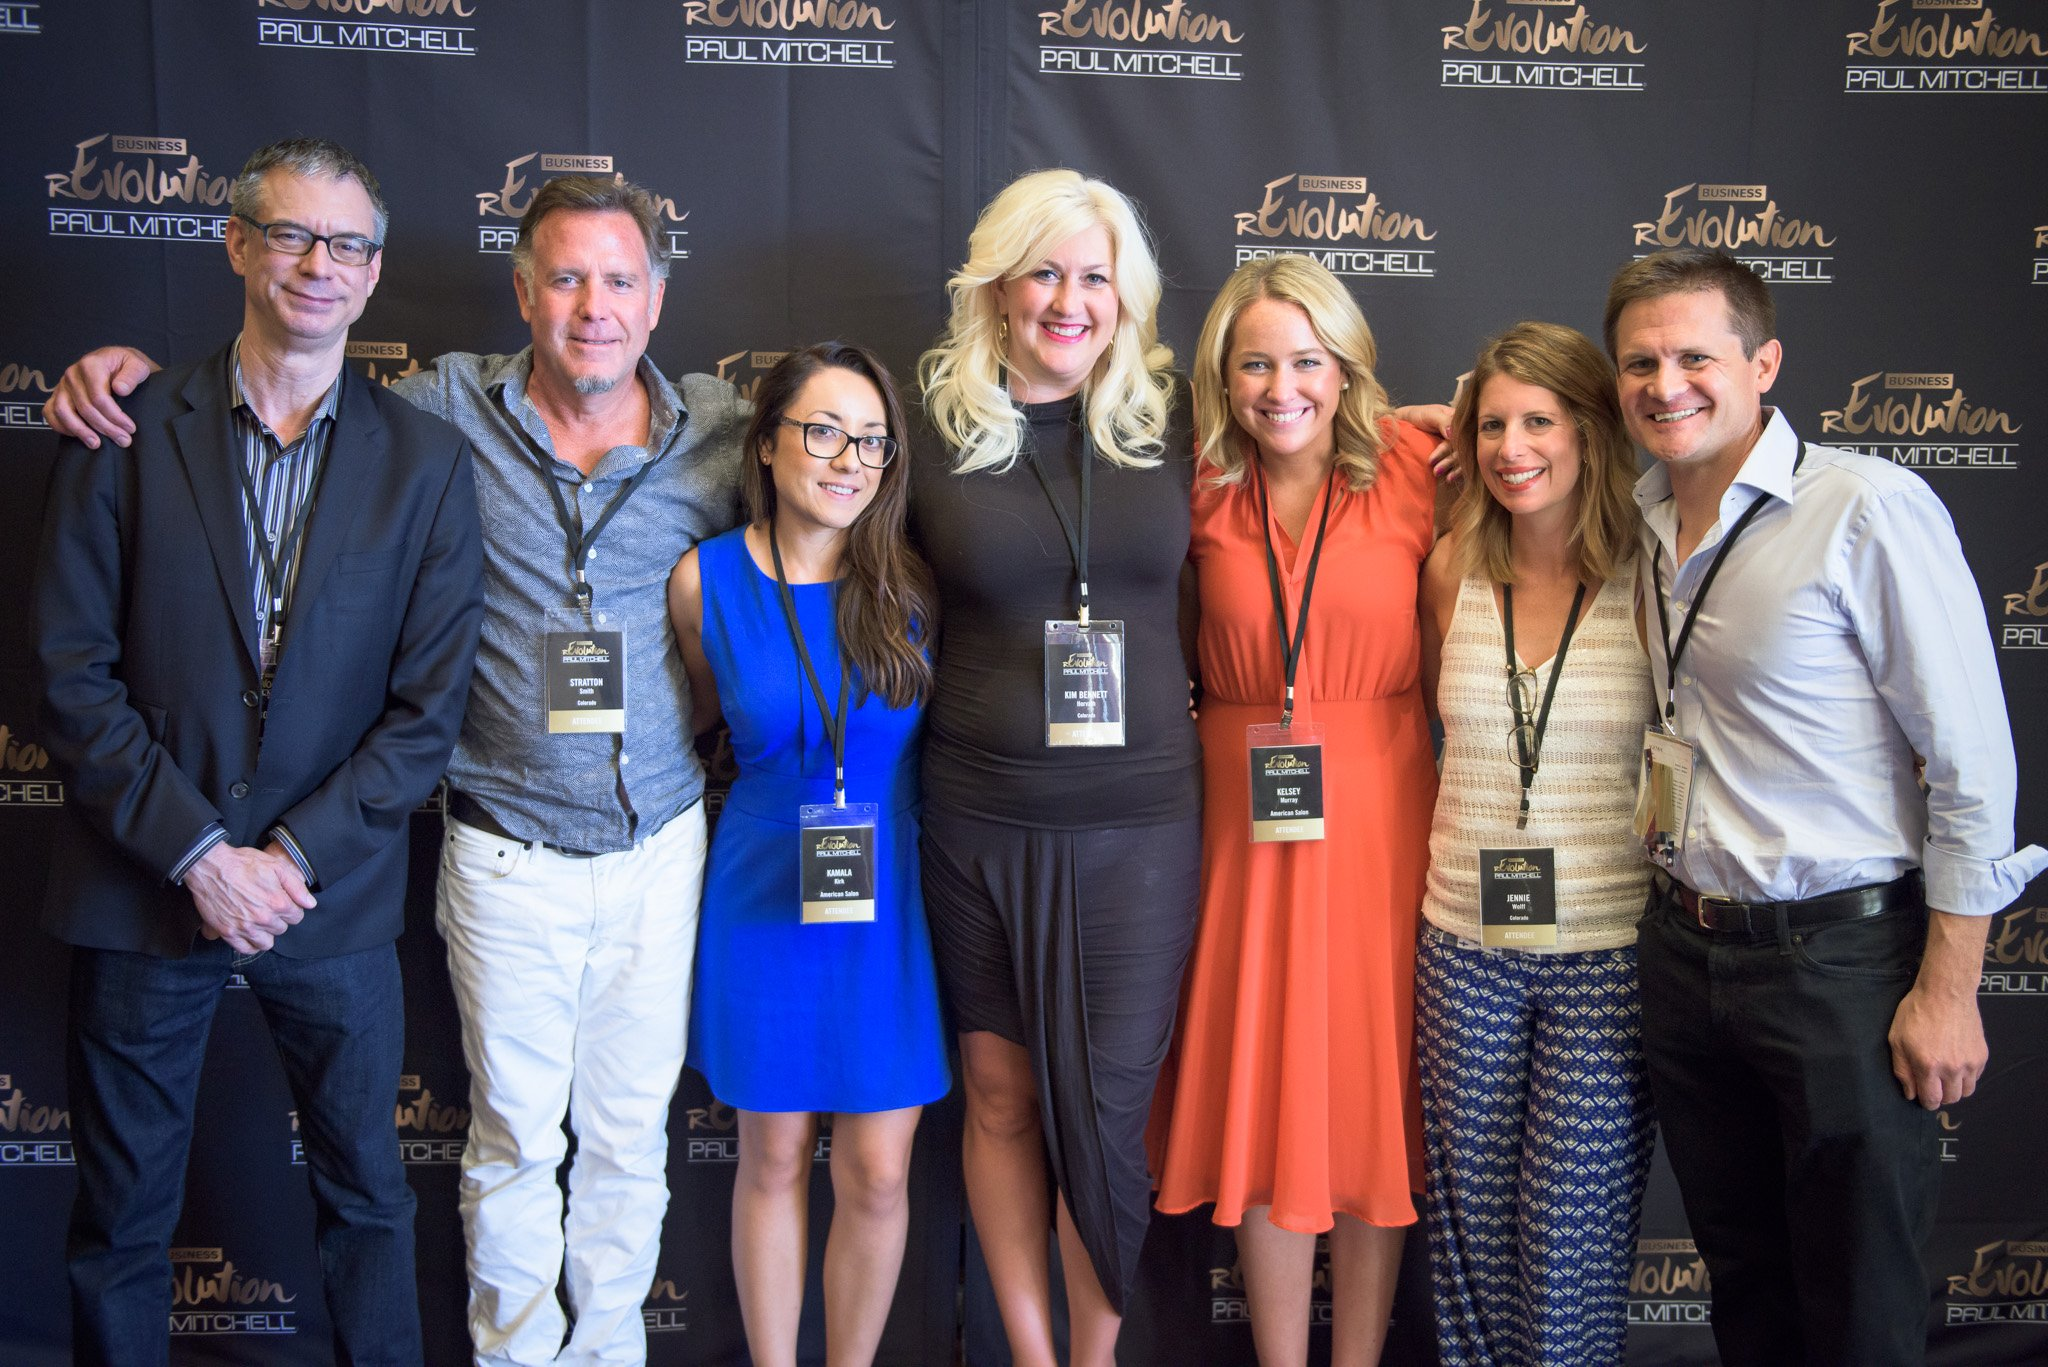 Attendees from Sola Suites Executive Team with the American Salon Team